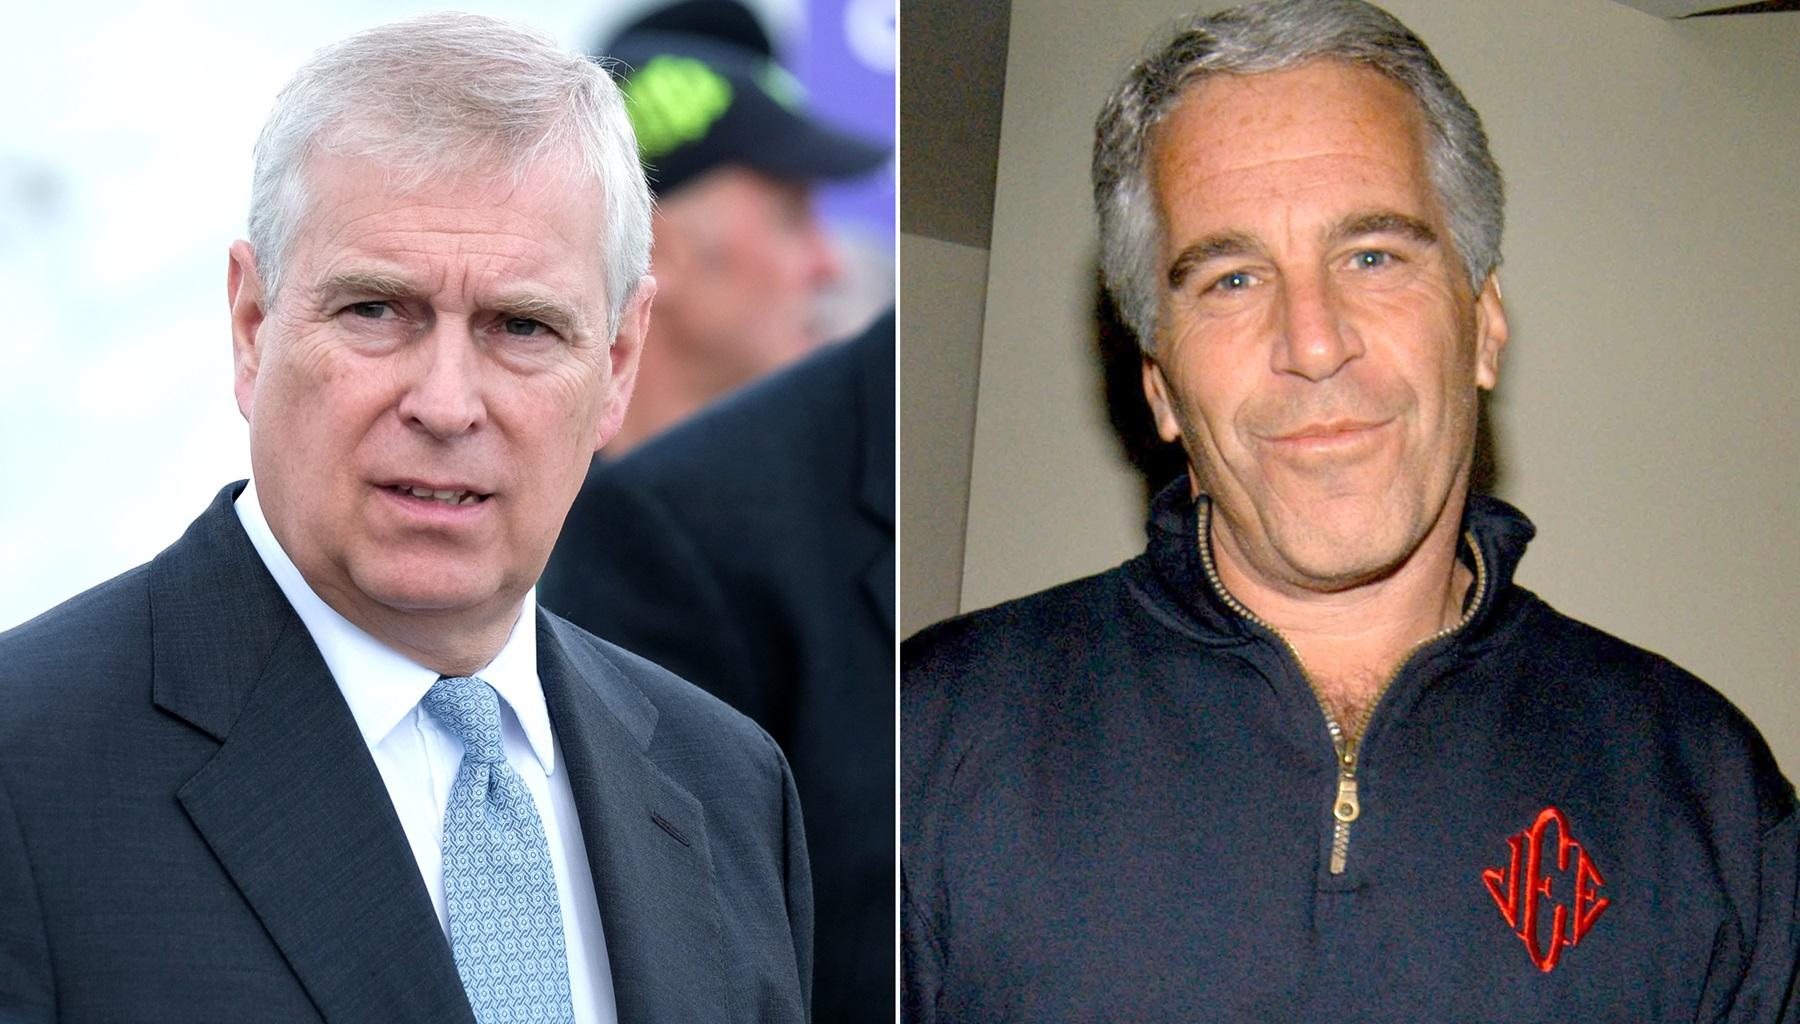 MI6 Is Worried About Russia Having Compromising Materials On Prince Andrew And Disgraced Financier Jeffrey Epstein